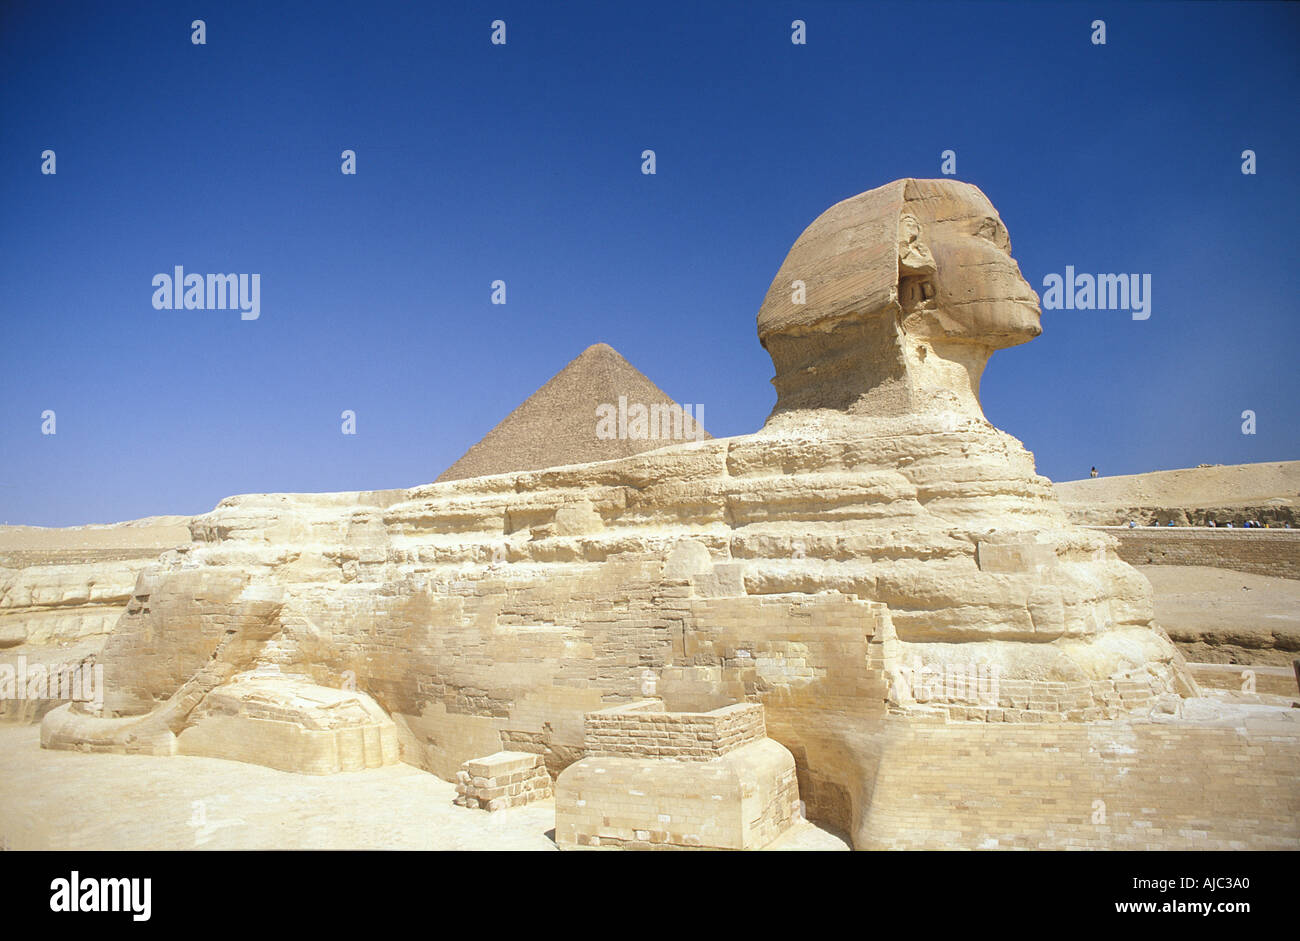 The Sphinx and pyramid of Khufu The Pyramids Giza Cairo Egypt - Stock Image